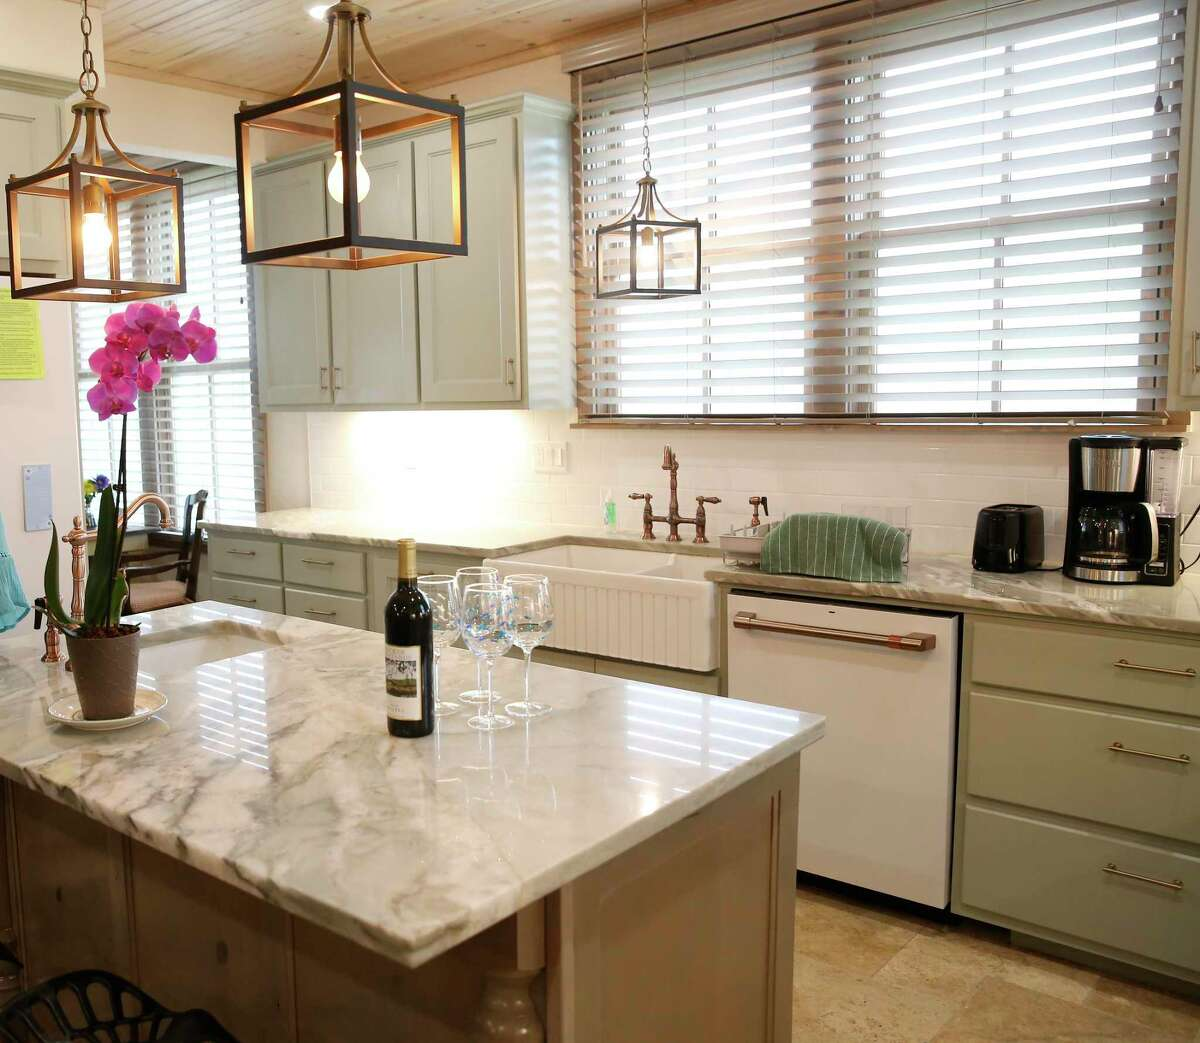 The center island and counter in the kitchen are both topped with a natural stone quartzite that has a handsome greenish veining. Green was a popular shade used in old country kitchens, according to owner Ben Culpepper.